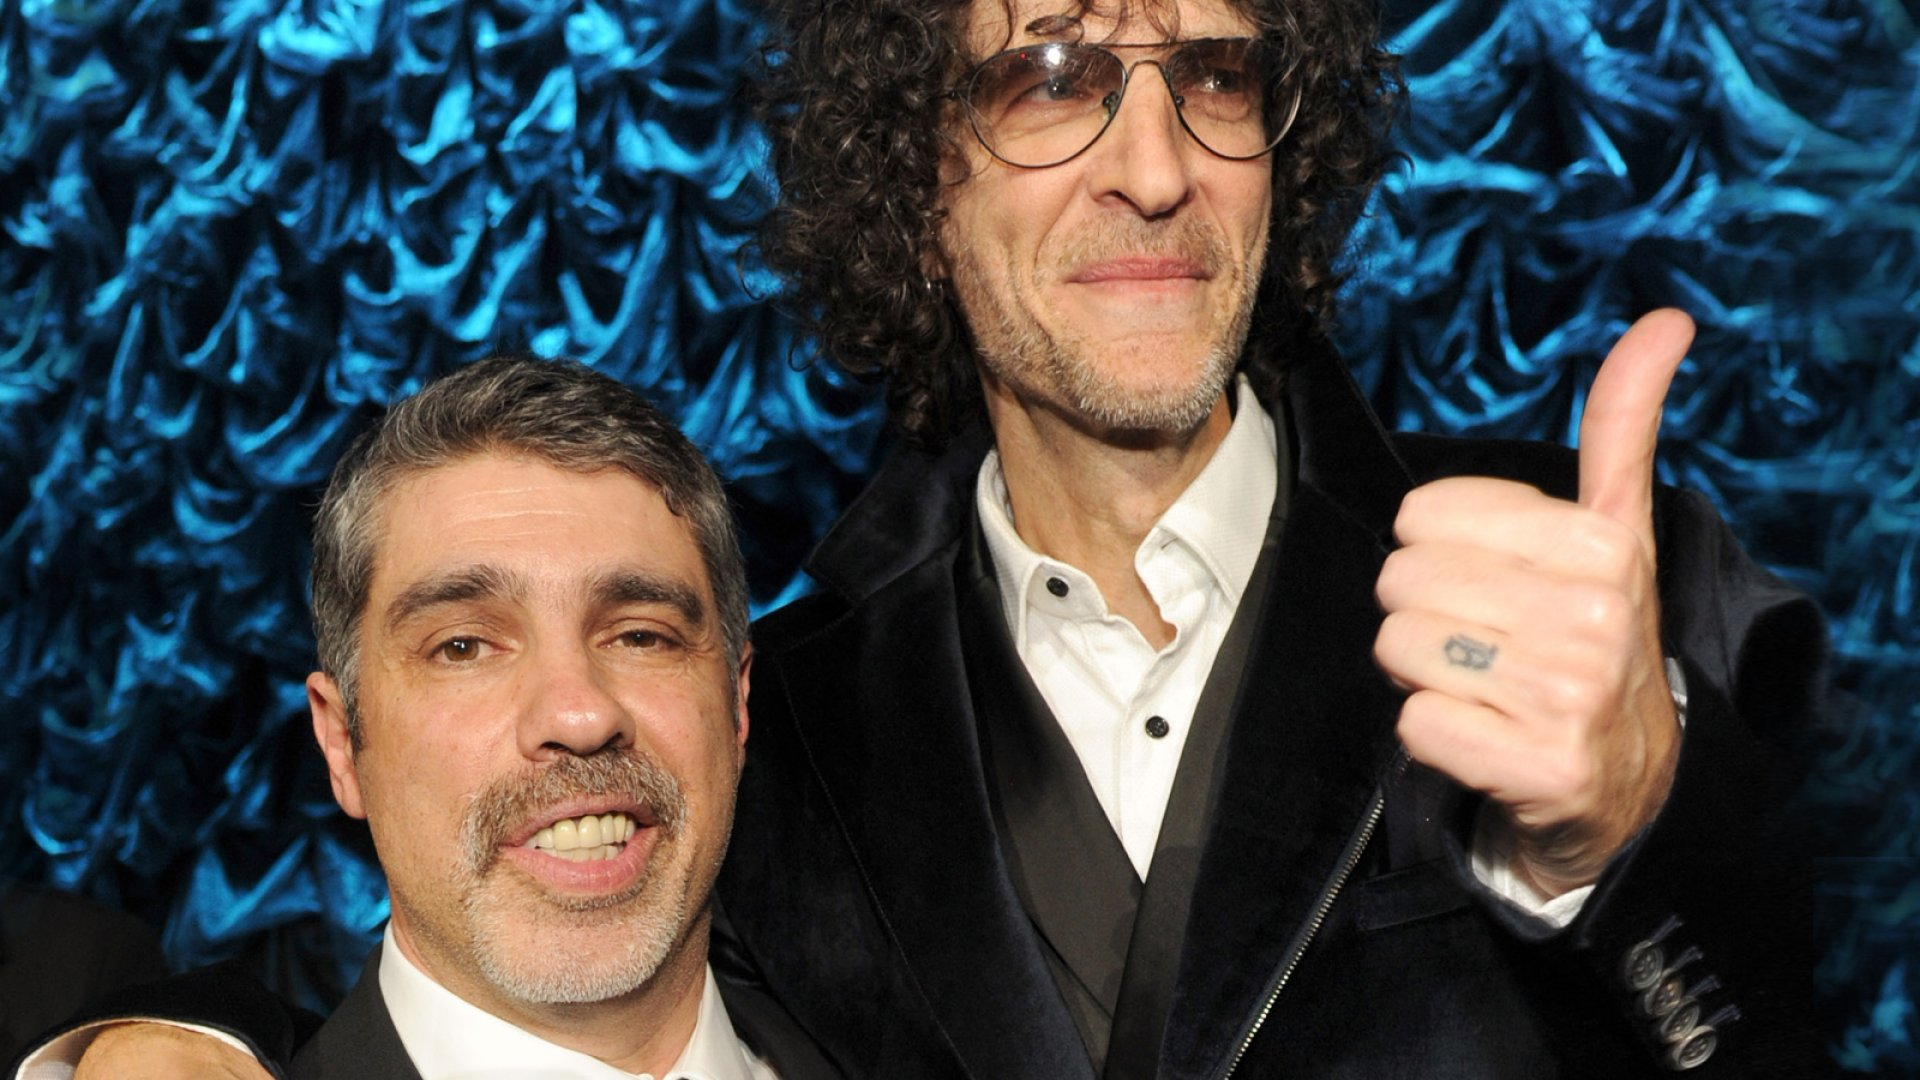 Property of Baba Booey The Stern Show